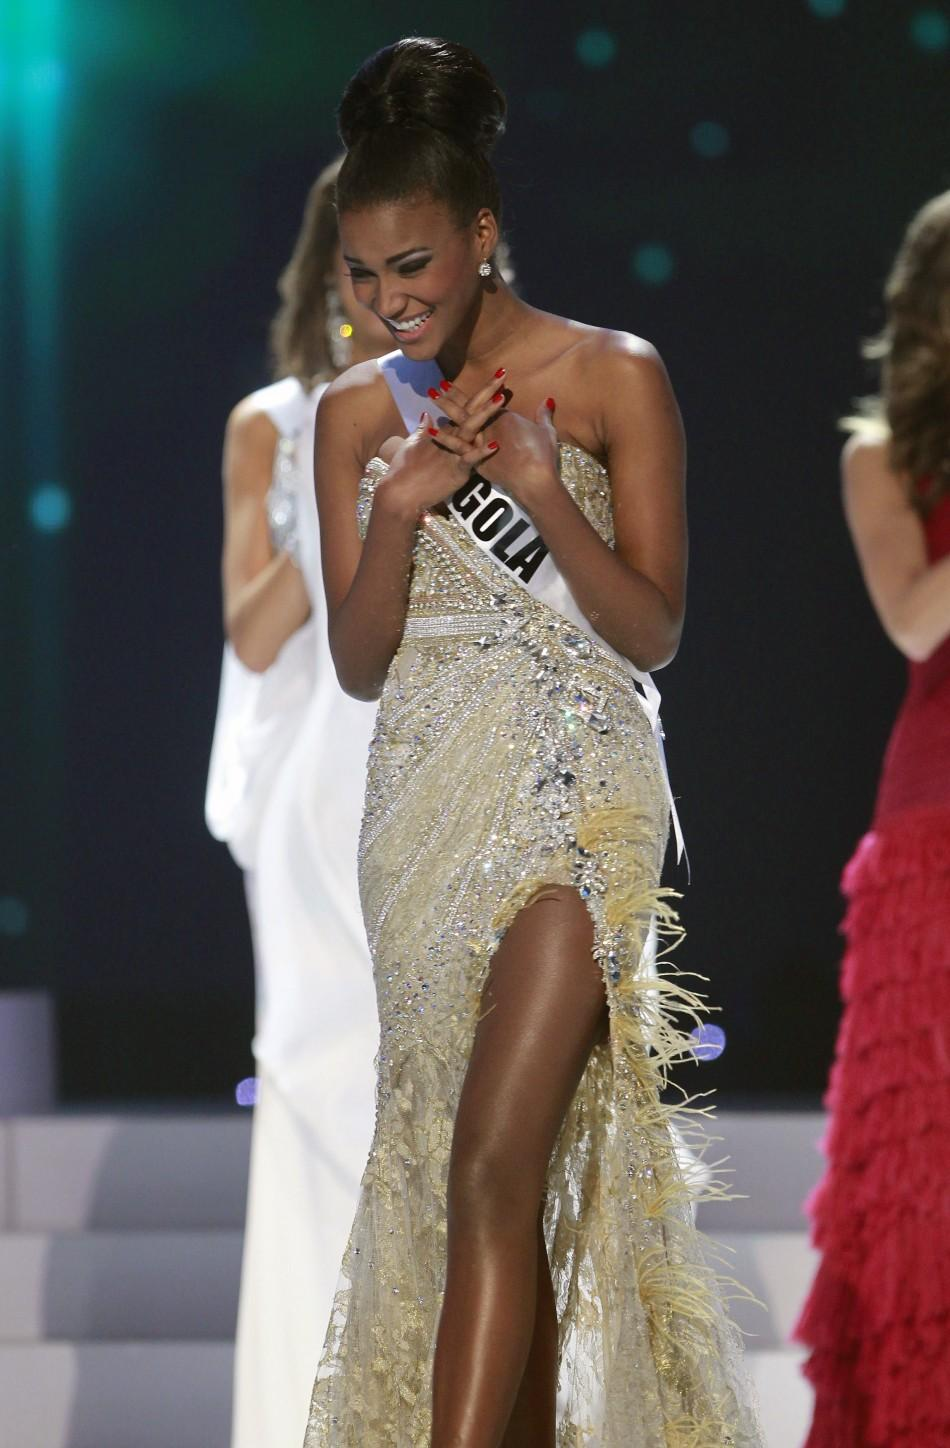 Miss Angola Leila Lopes steps forward after being chosen among the final five contestants of the Miss Universe 2011 page...